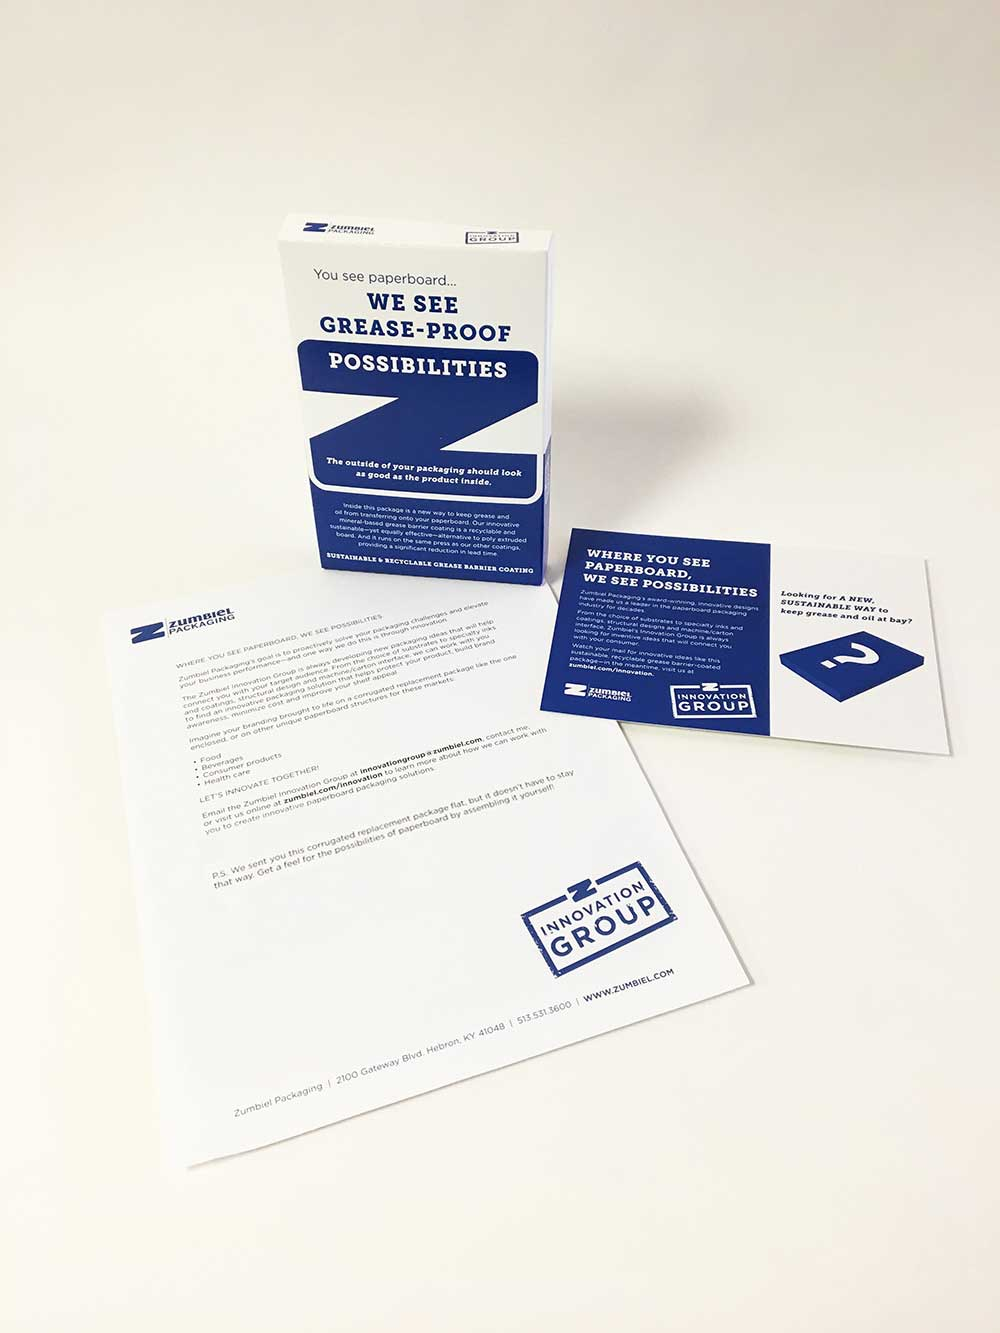 Direct mail campaign with grease-proof box